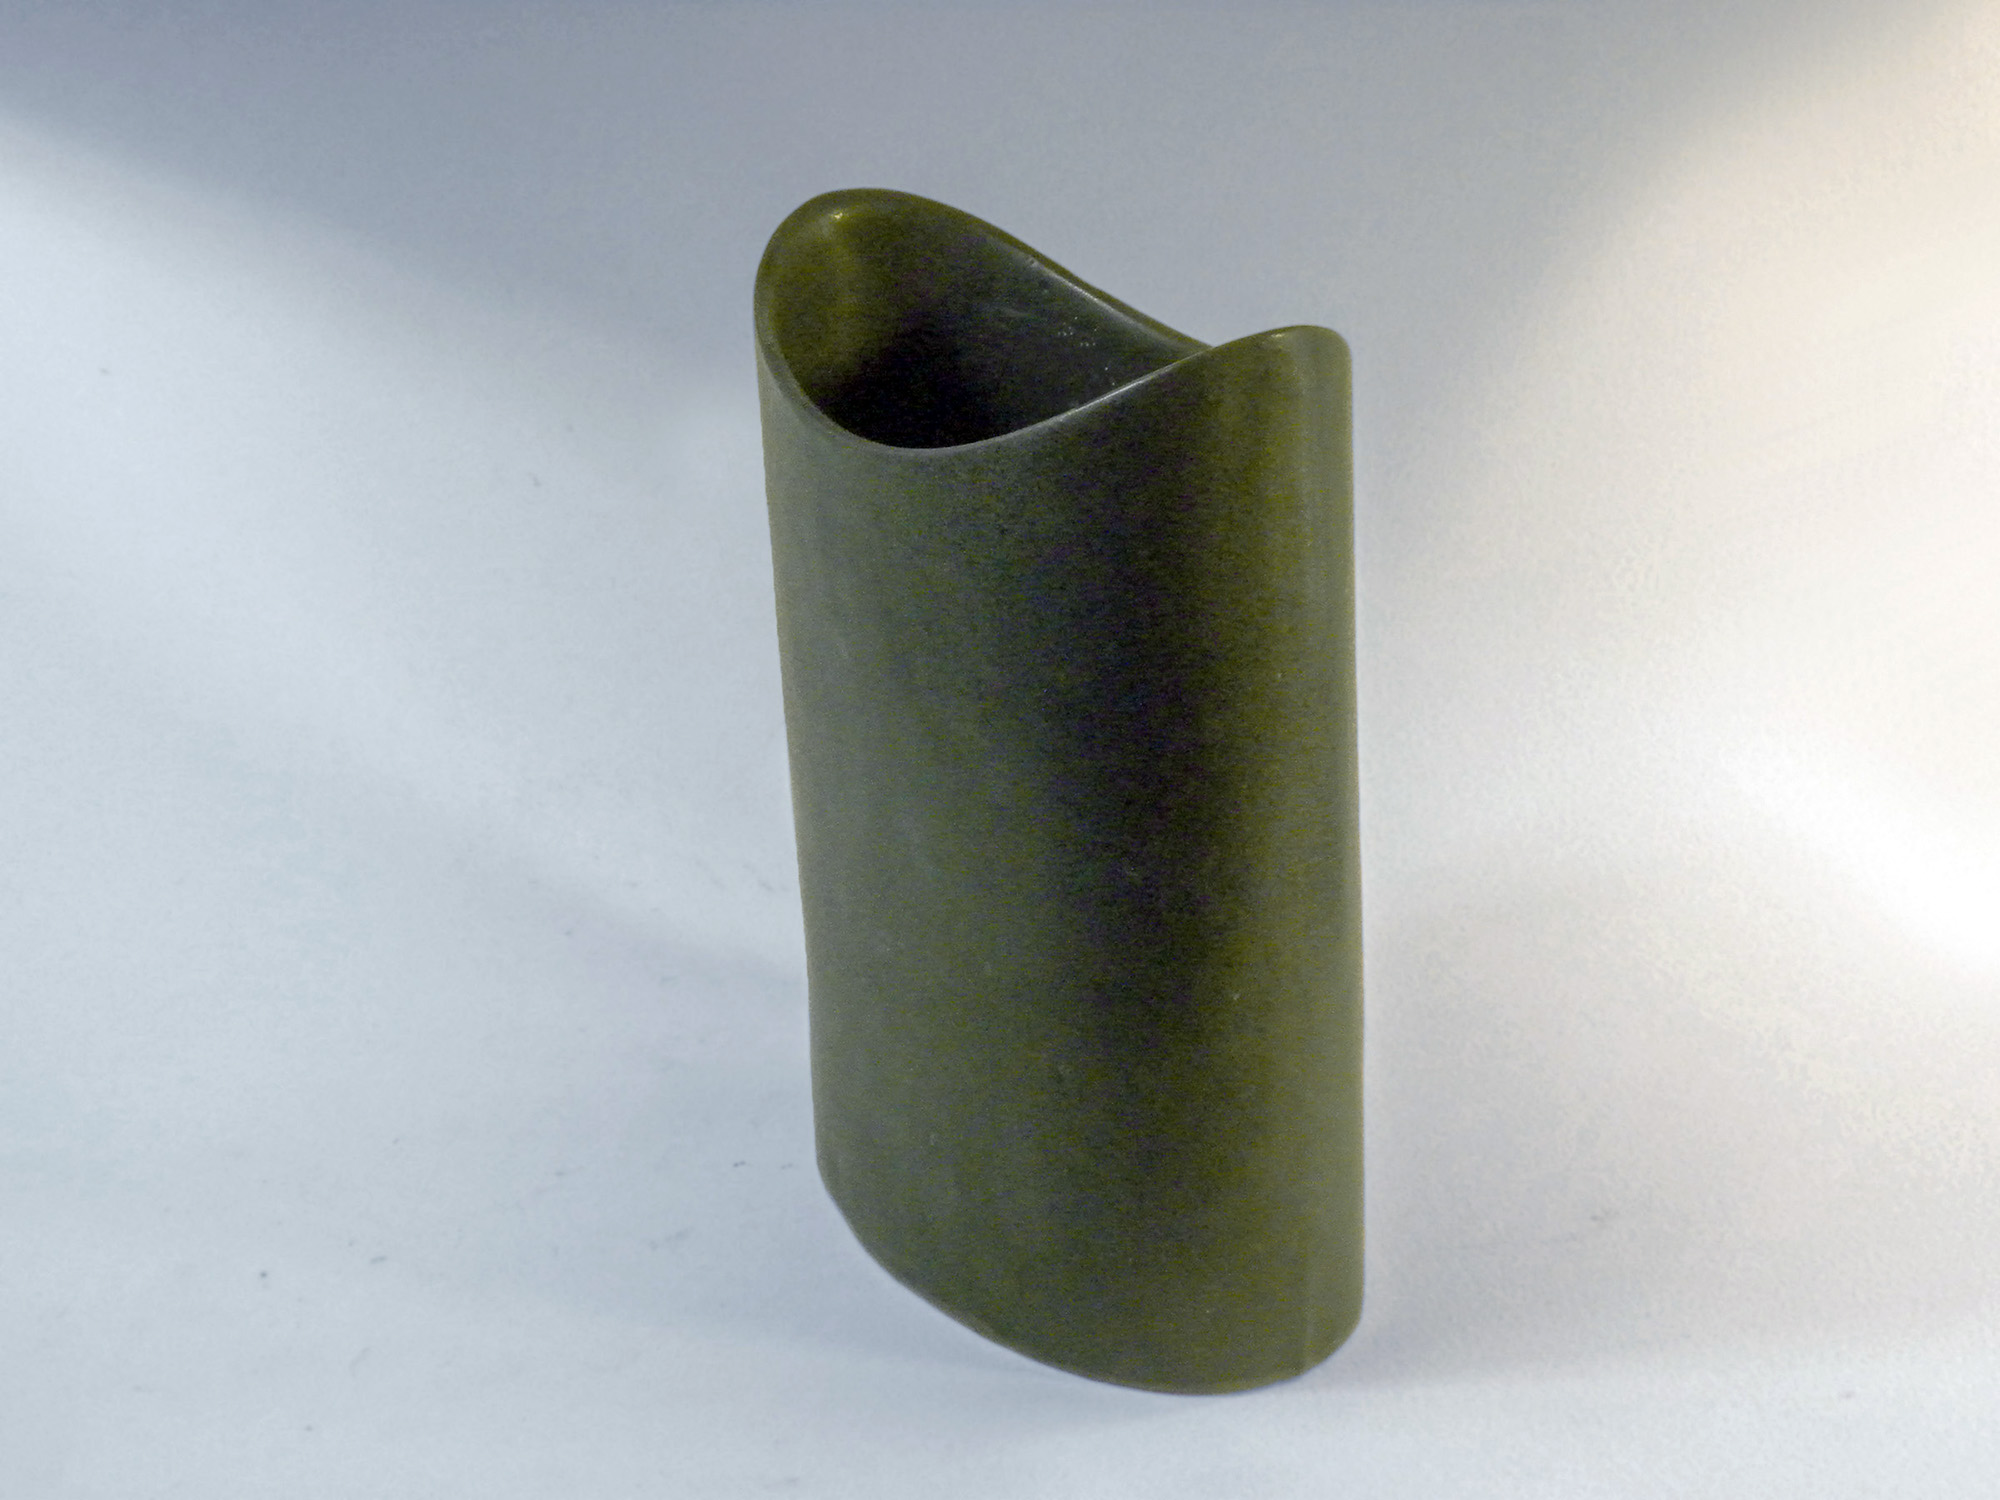 Short Oval Cylinder Vase in Moss Green Glaze vase curved opening, in Moss Green